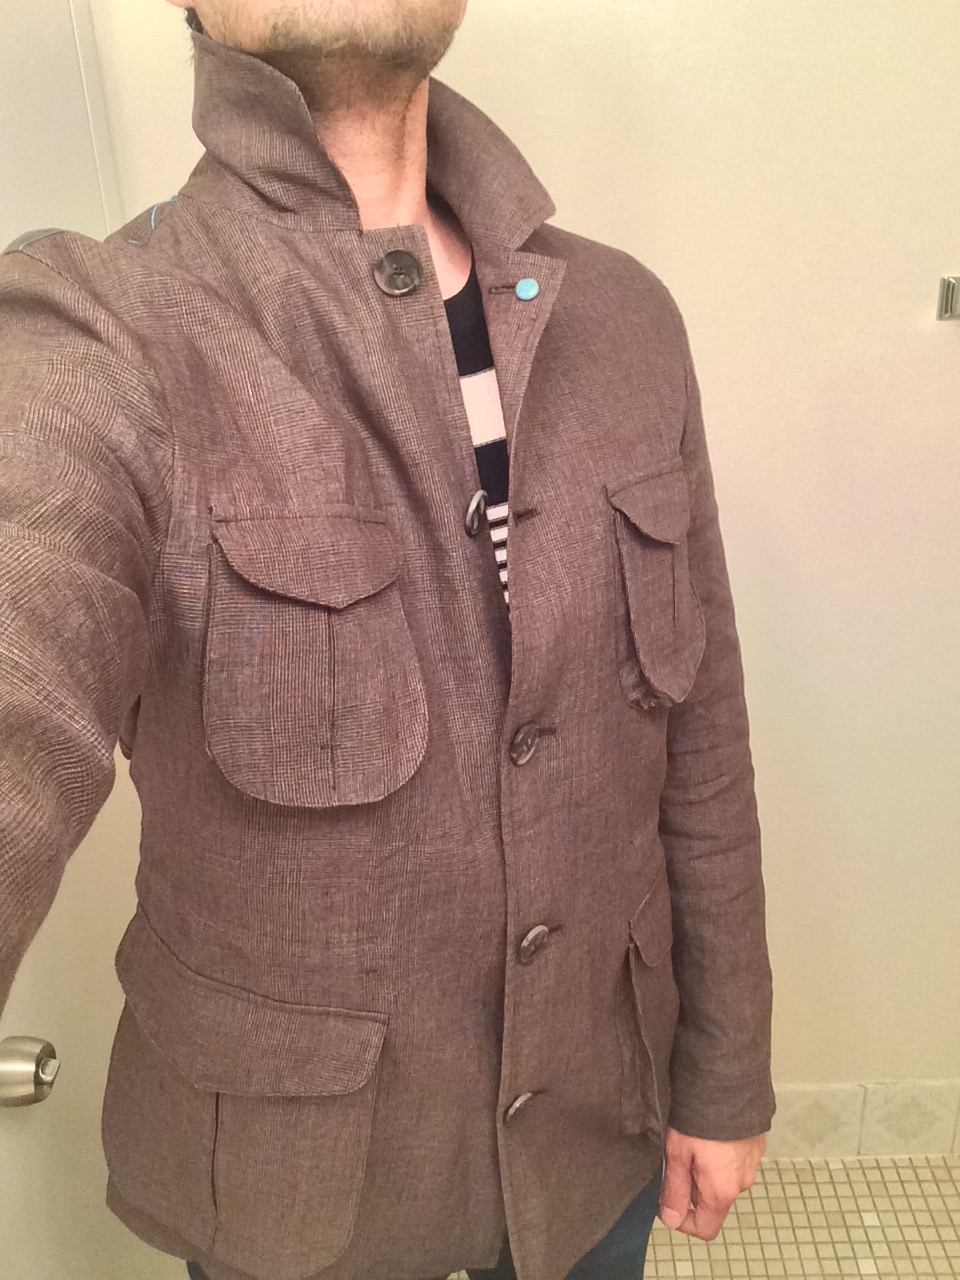 Eidos Field Jacket and Striped Sweater